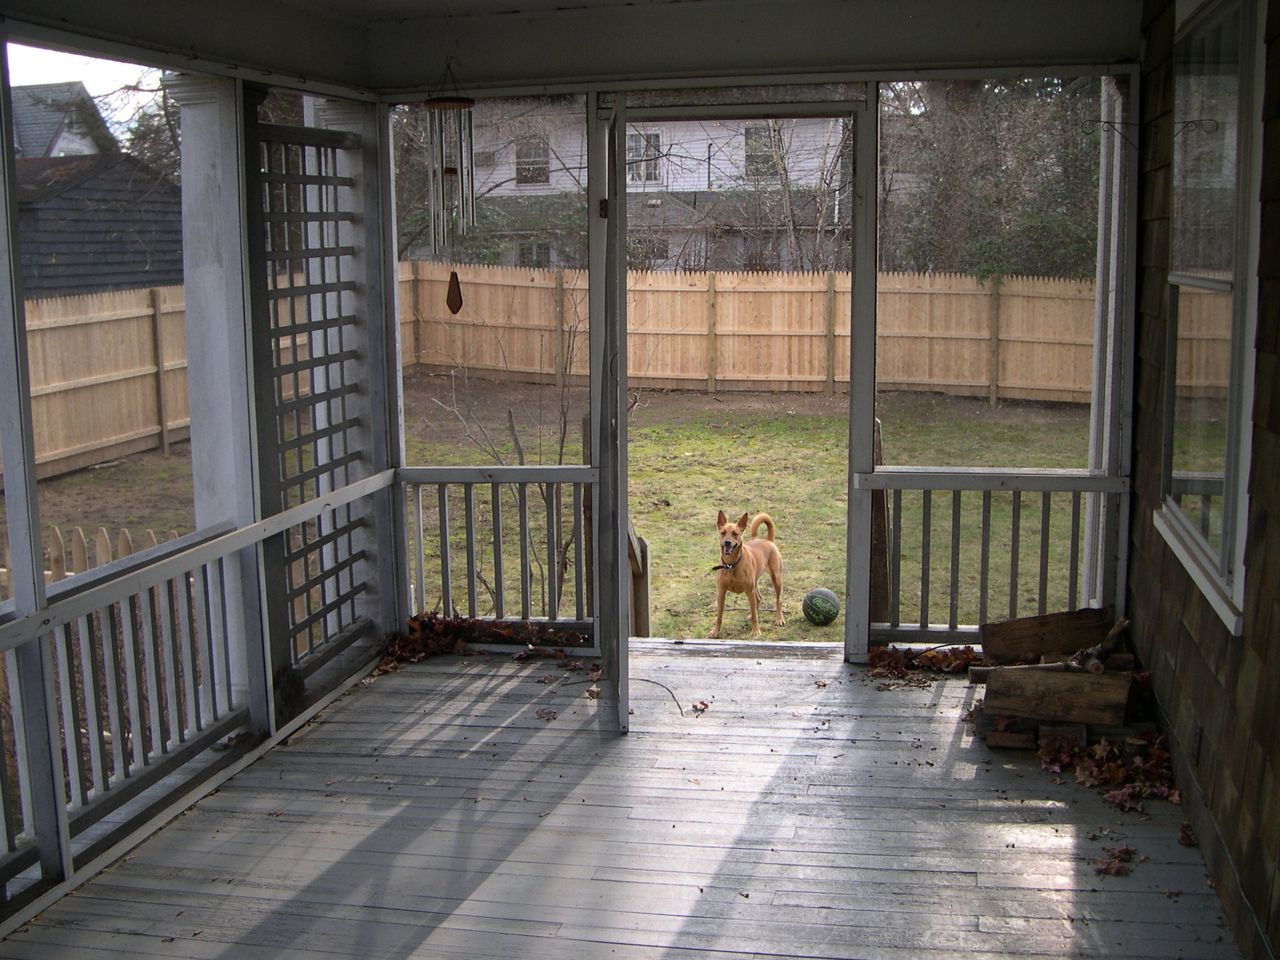 Major BEFORE: Back when we bought the house (and our sweet pup was just getting to know the place that would be her forever home) this was what the porch looked like. We've since had it rebuilt, re-supported, re-re-staired (yep, twice), and now re-stained. Phew.